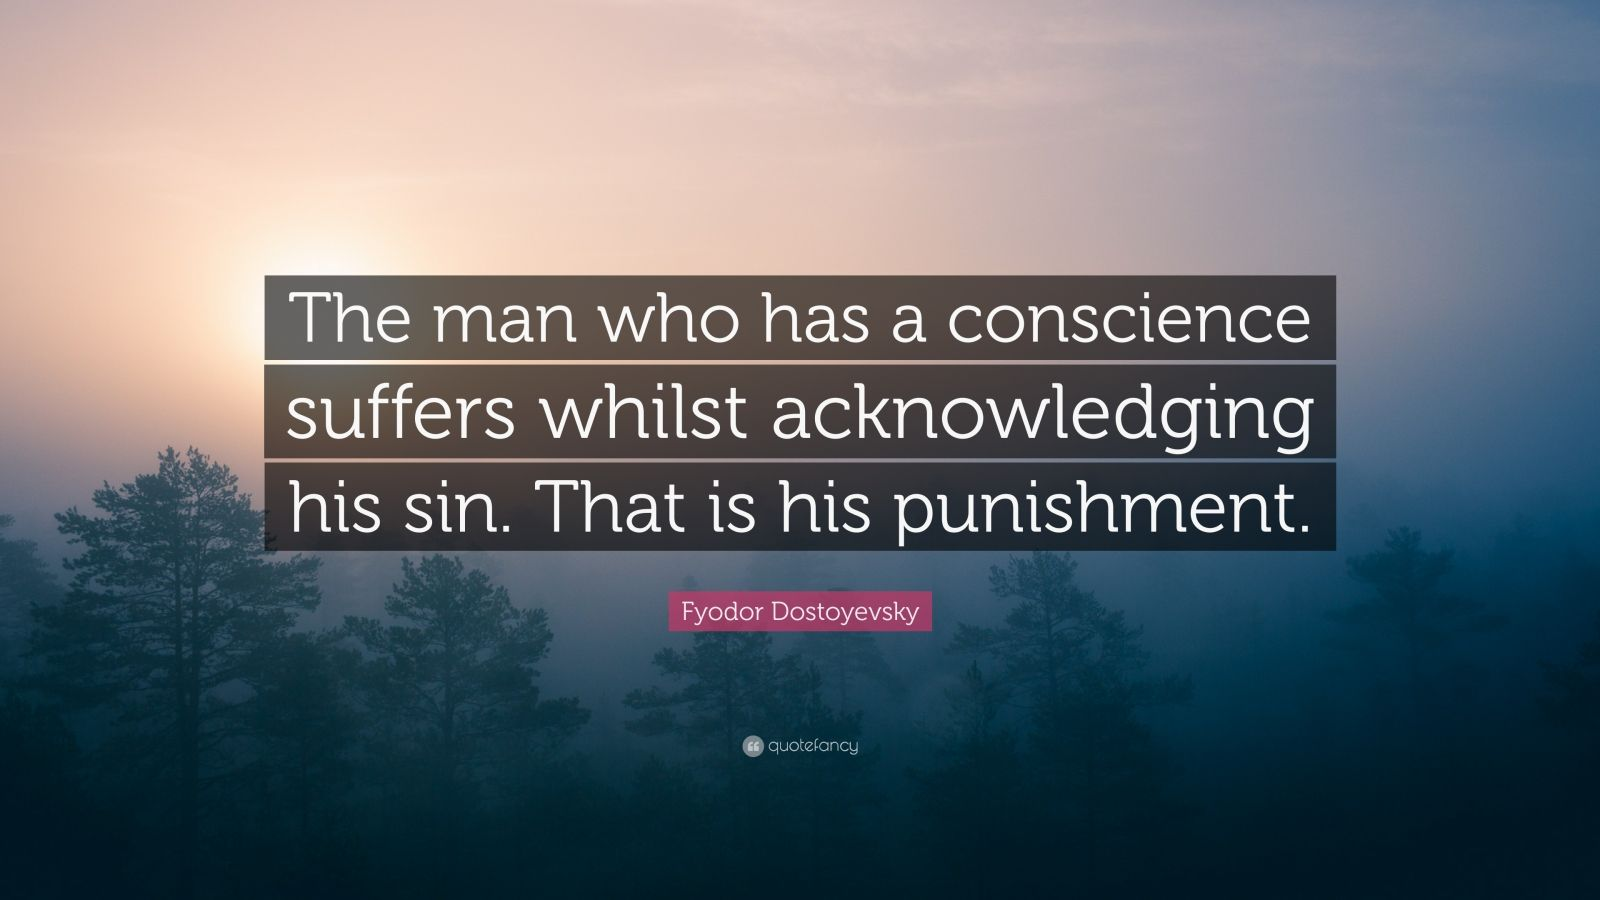 """Fyodor Dostoyevsky Quote: """"The man who has a conscience suffers whilst acknowledging his sin. That is his punishment."""""""